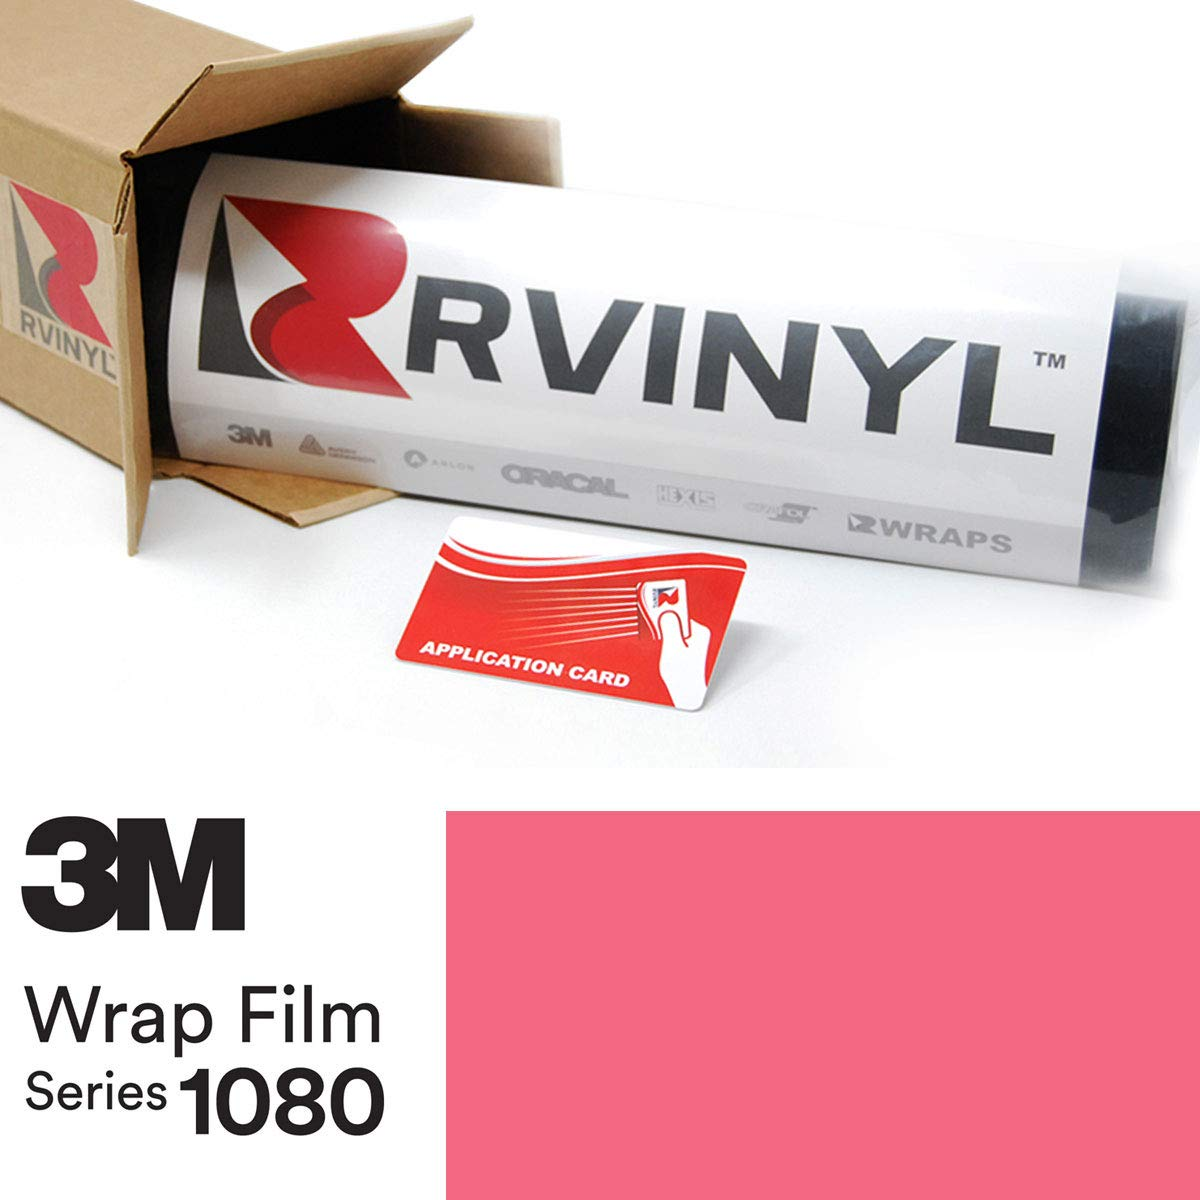 Vinyl Vehicle Car Wrap Film Sheet Roll Rvinyl 3M 1080 G103 Gloss HOT Pink 4in x 6in Sample Size